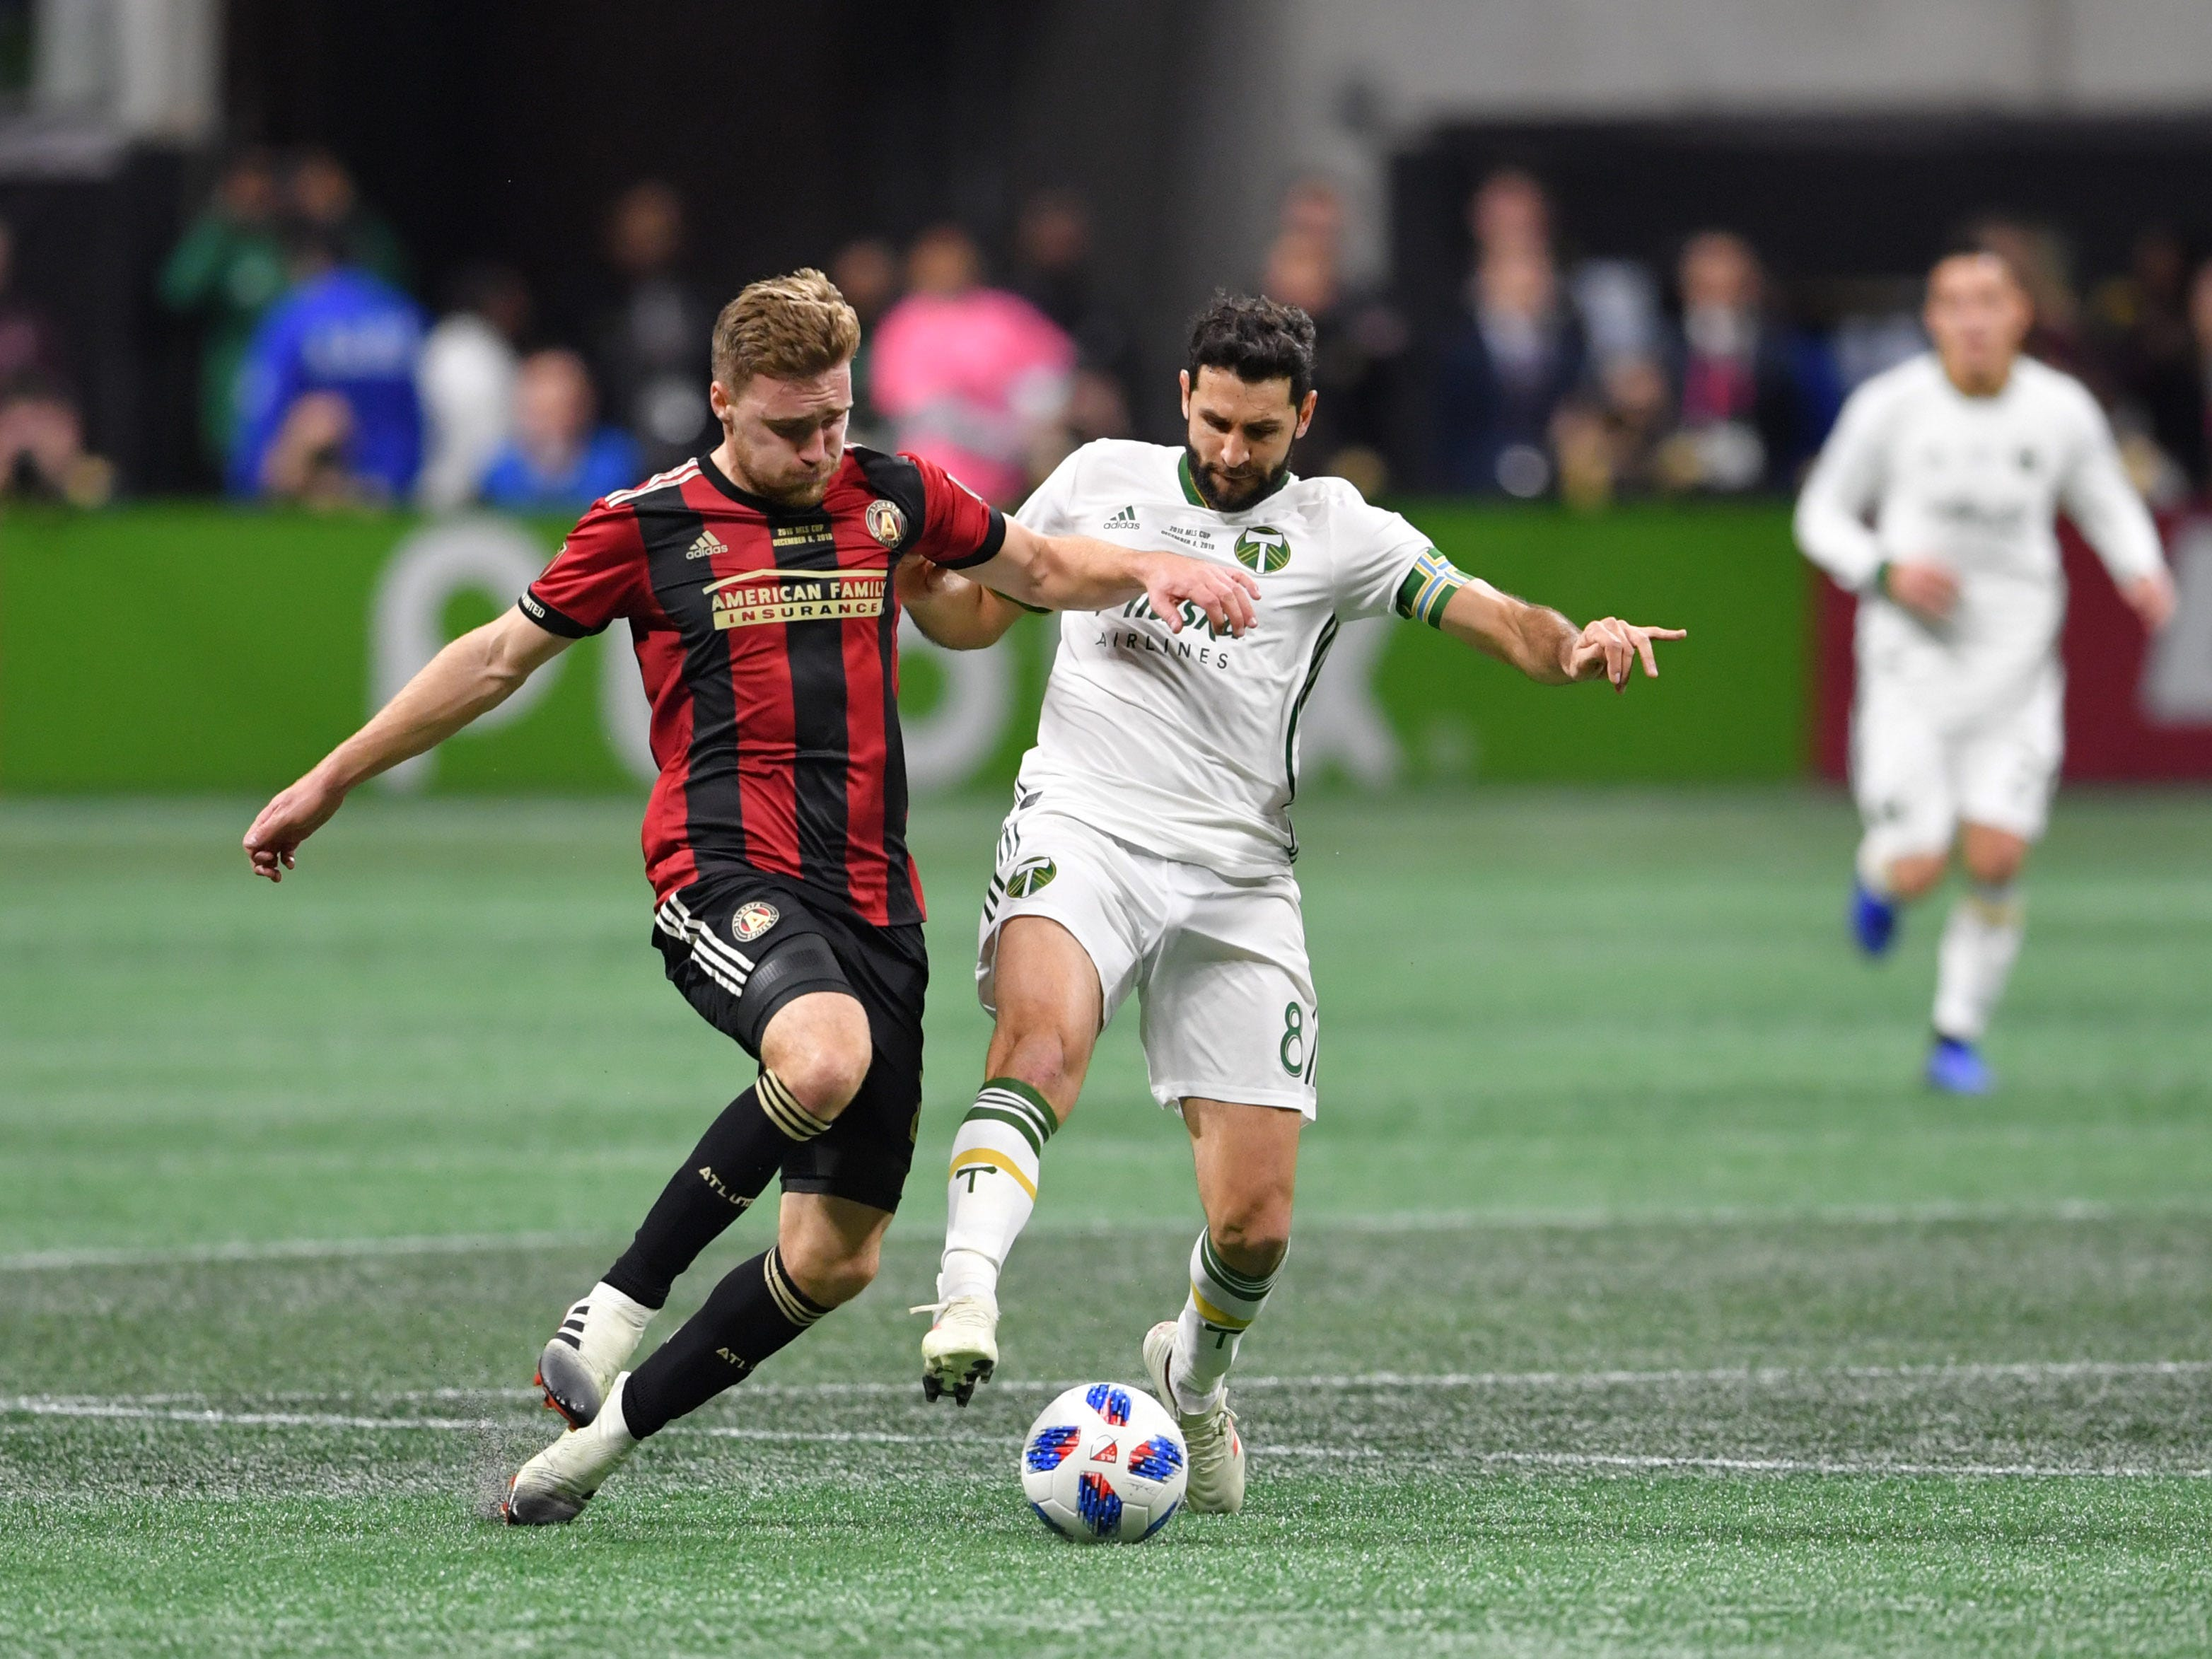 Portland Timbers midfielder Diego Valeri (8) battles for the ball with Atlanta United defender Greg Garza (4) during the first half in the 2018 MLS Cup.